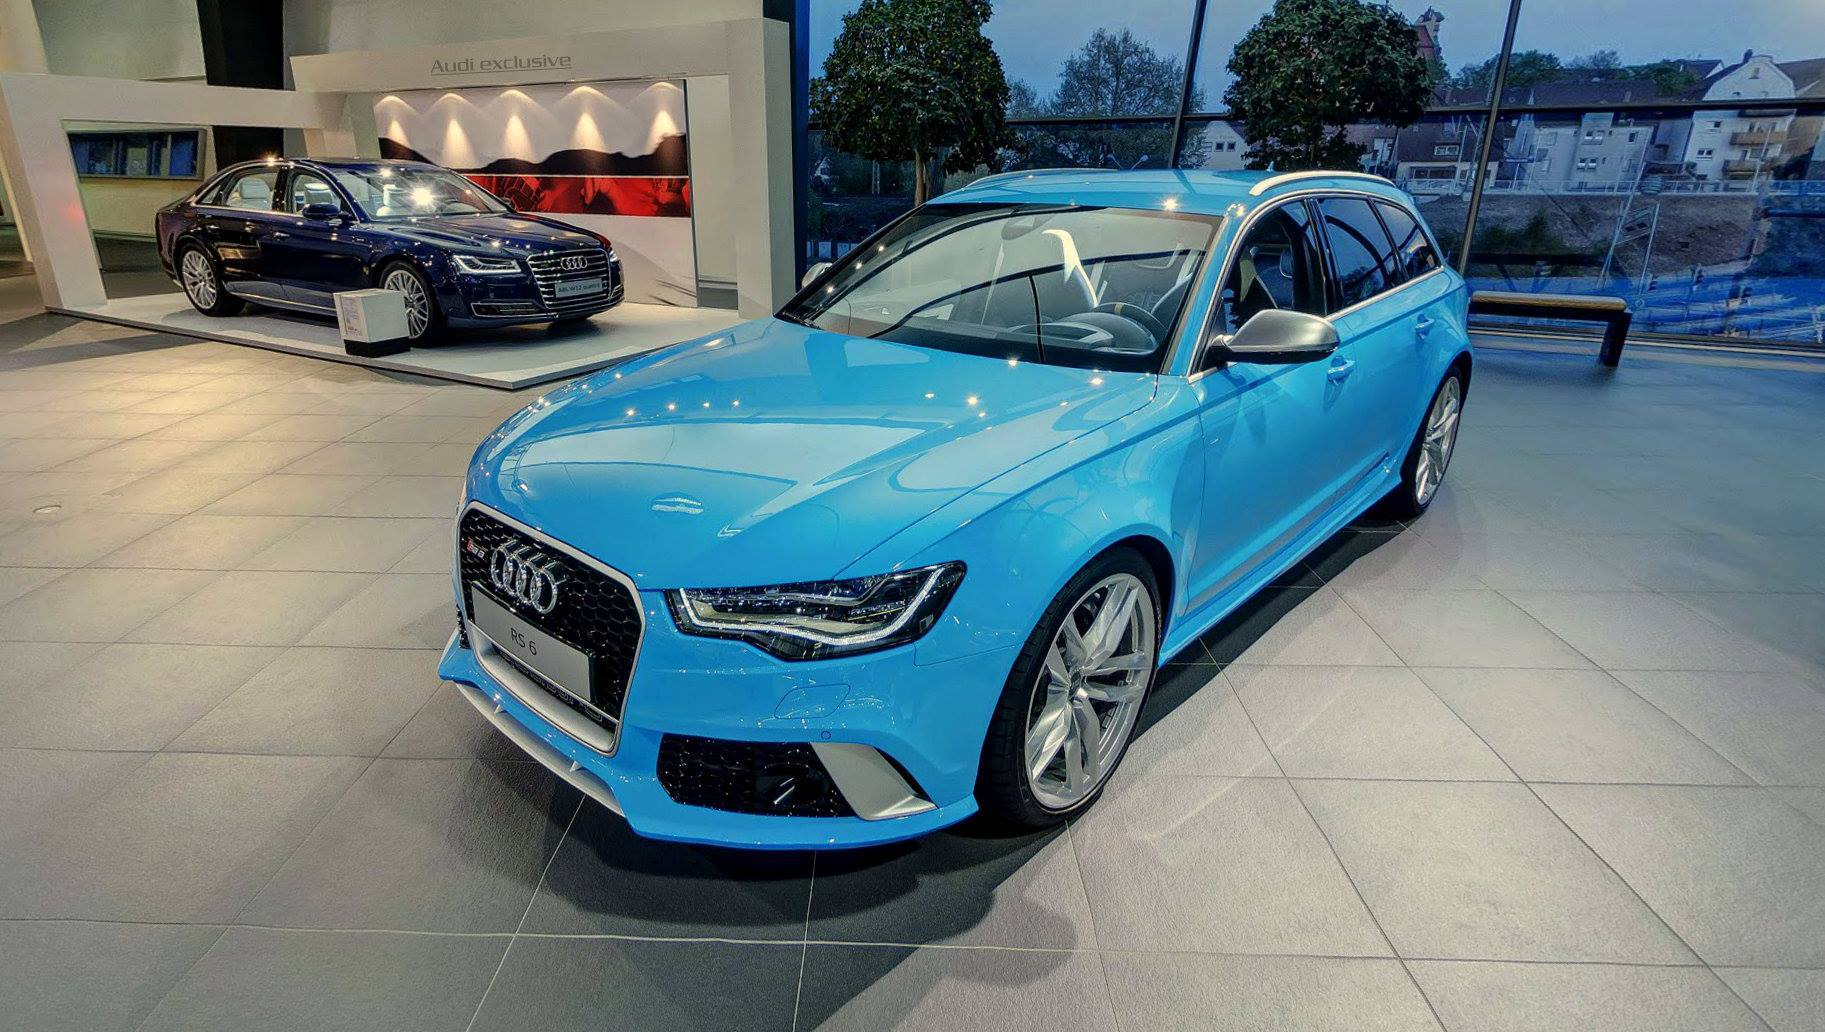 Audi RS6 Avant in Riviera Blue Is Smurftastic - autoevolution New Smurf Blue Porsche on new blue chevrolet, new blue vw, new blue kia, new blue volvo, new blue mustang, new blue camaro, new blue bmw, new blue subaru, new blue tesla, new blue ferrari, new blue corvette z06,